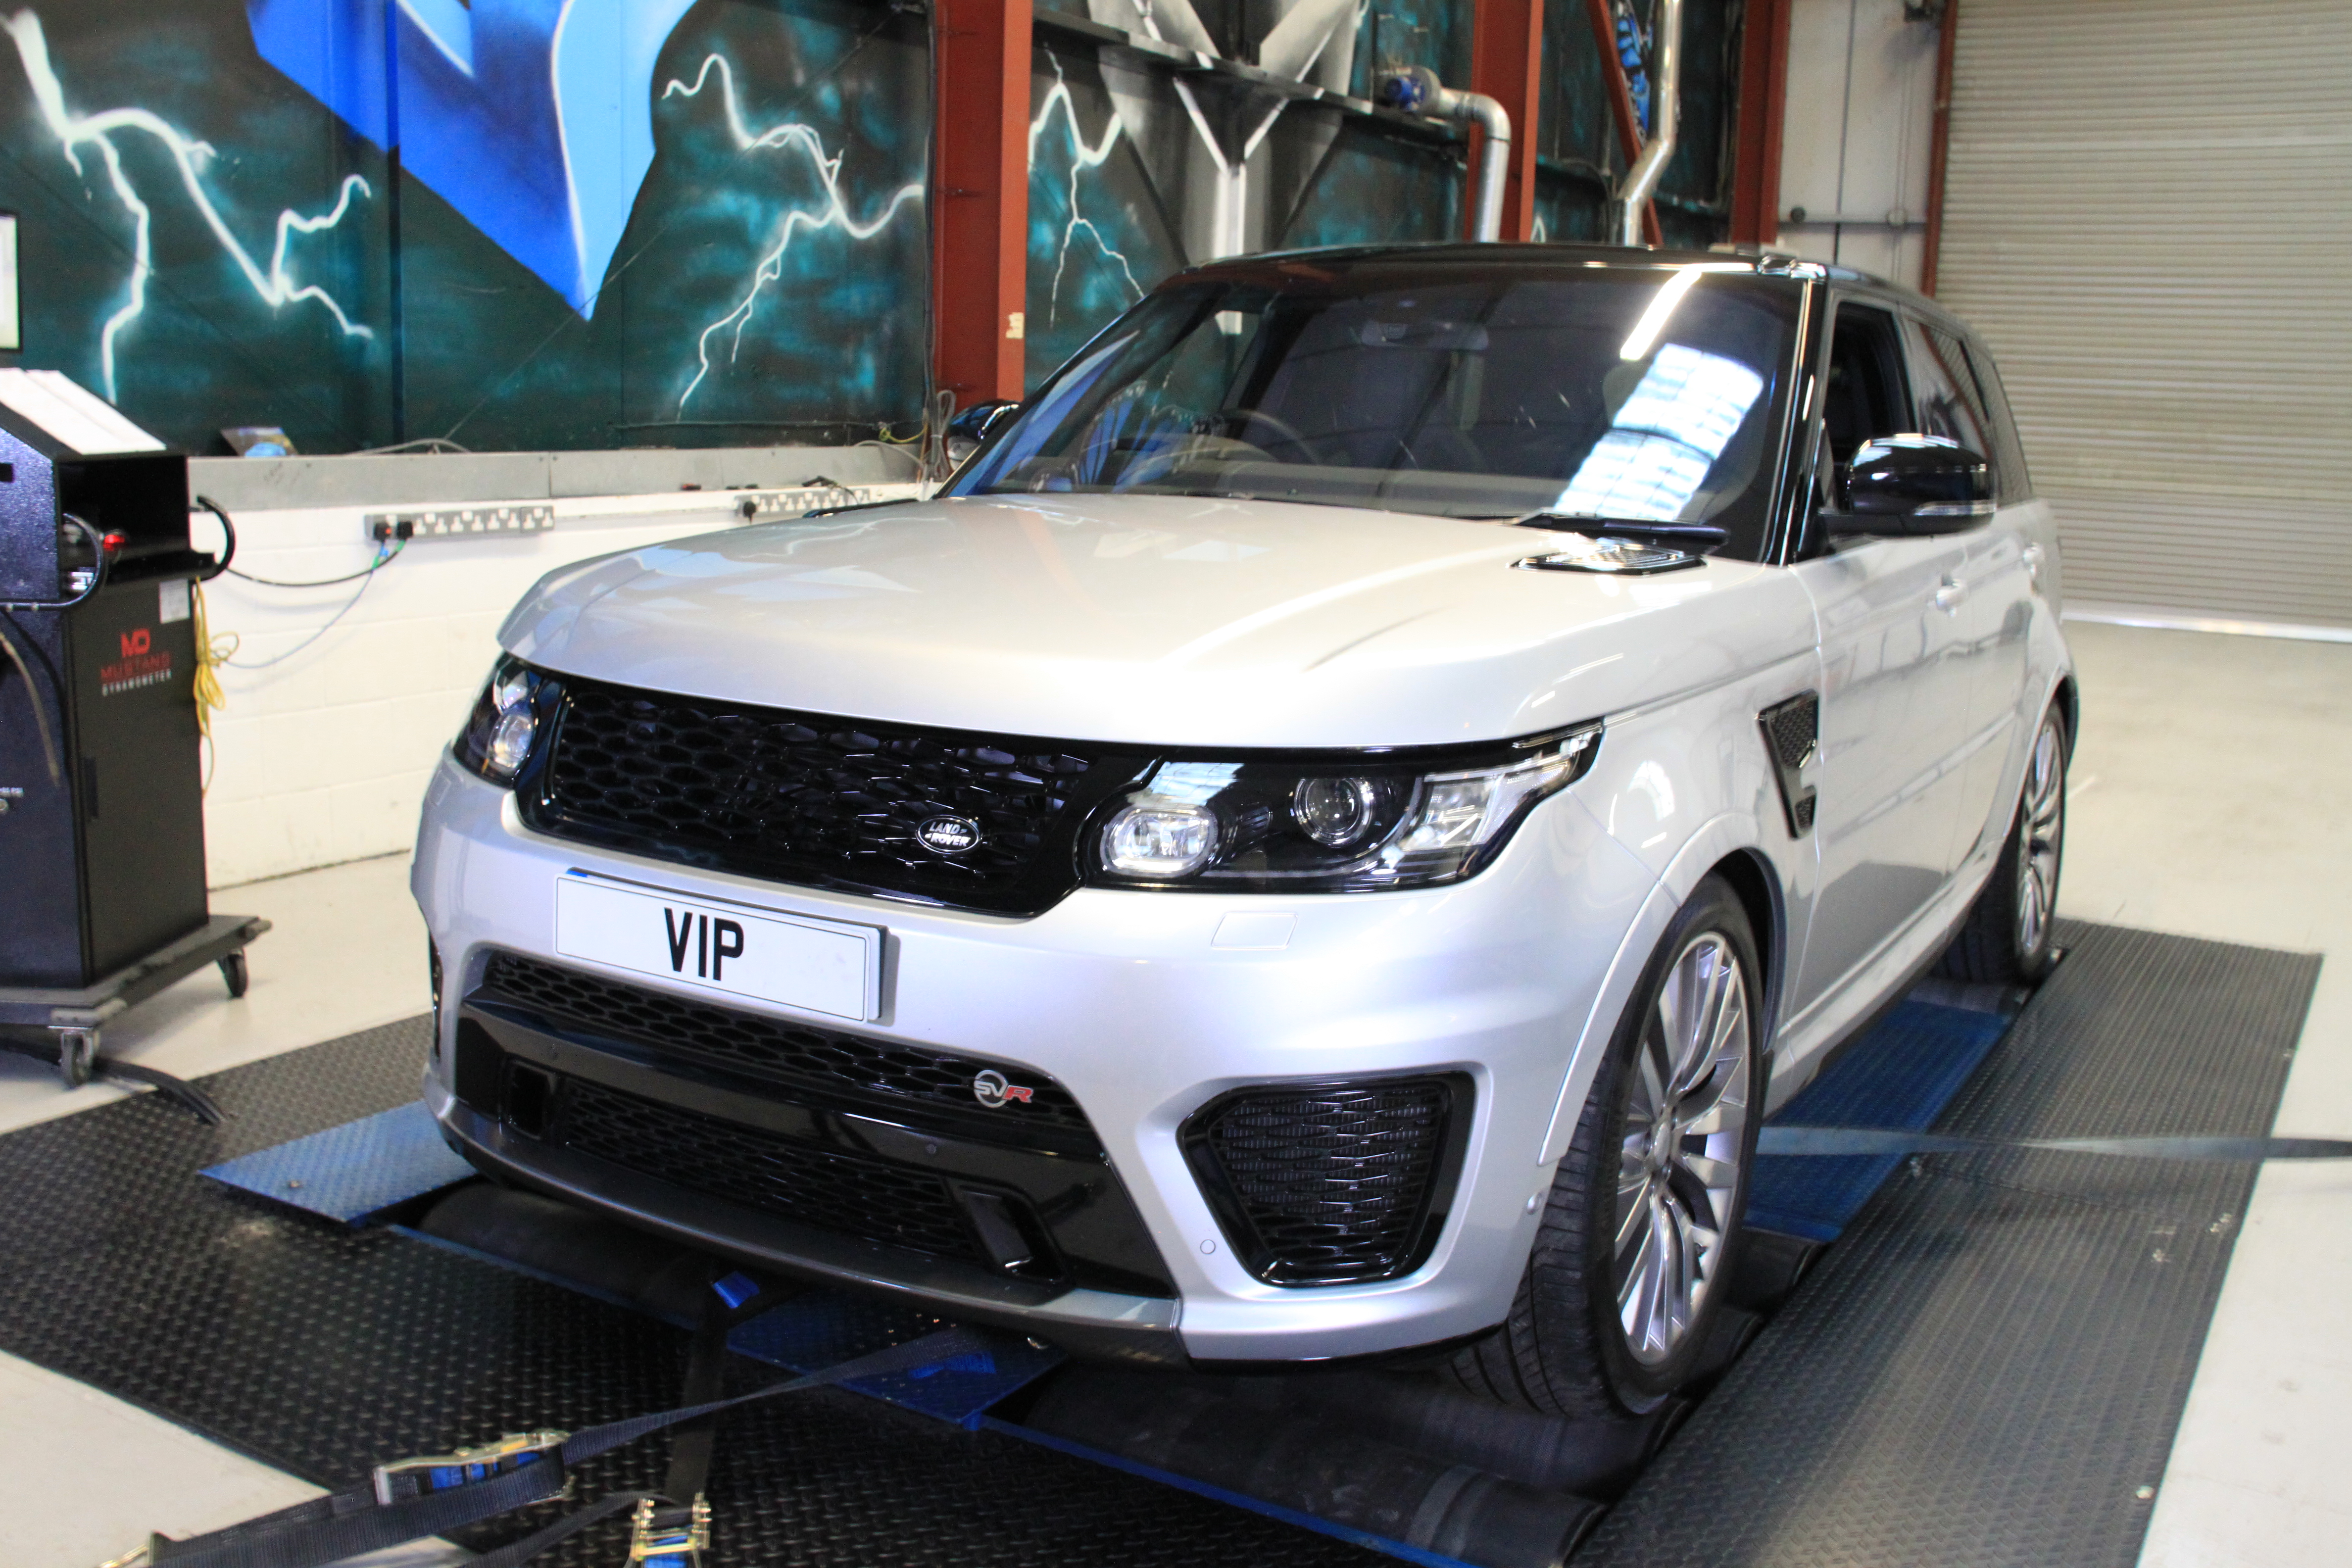 range rover tuning uk and styling from vip design london. Black Bedroom Furniture Sets. Home Design Ideas